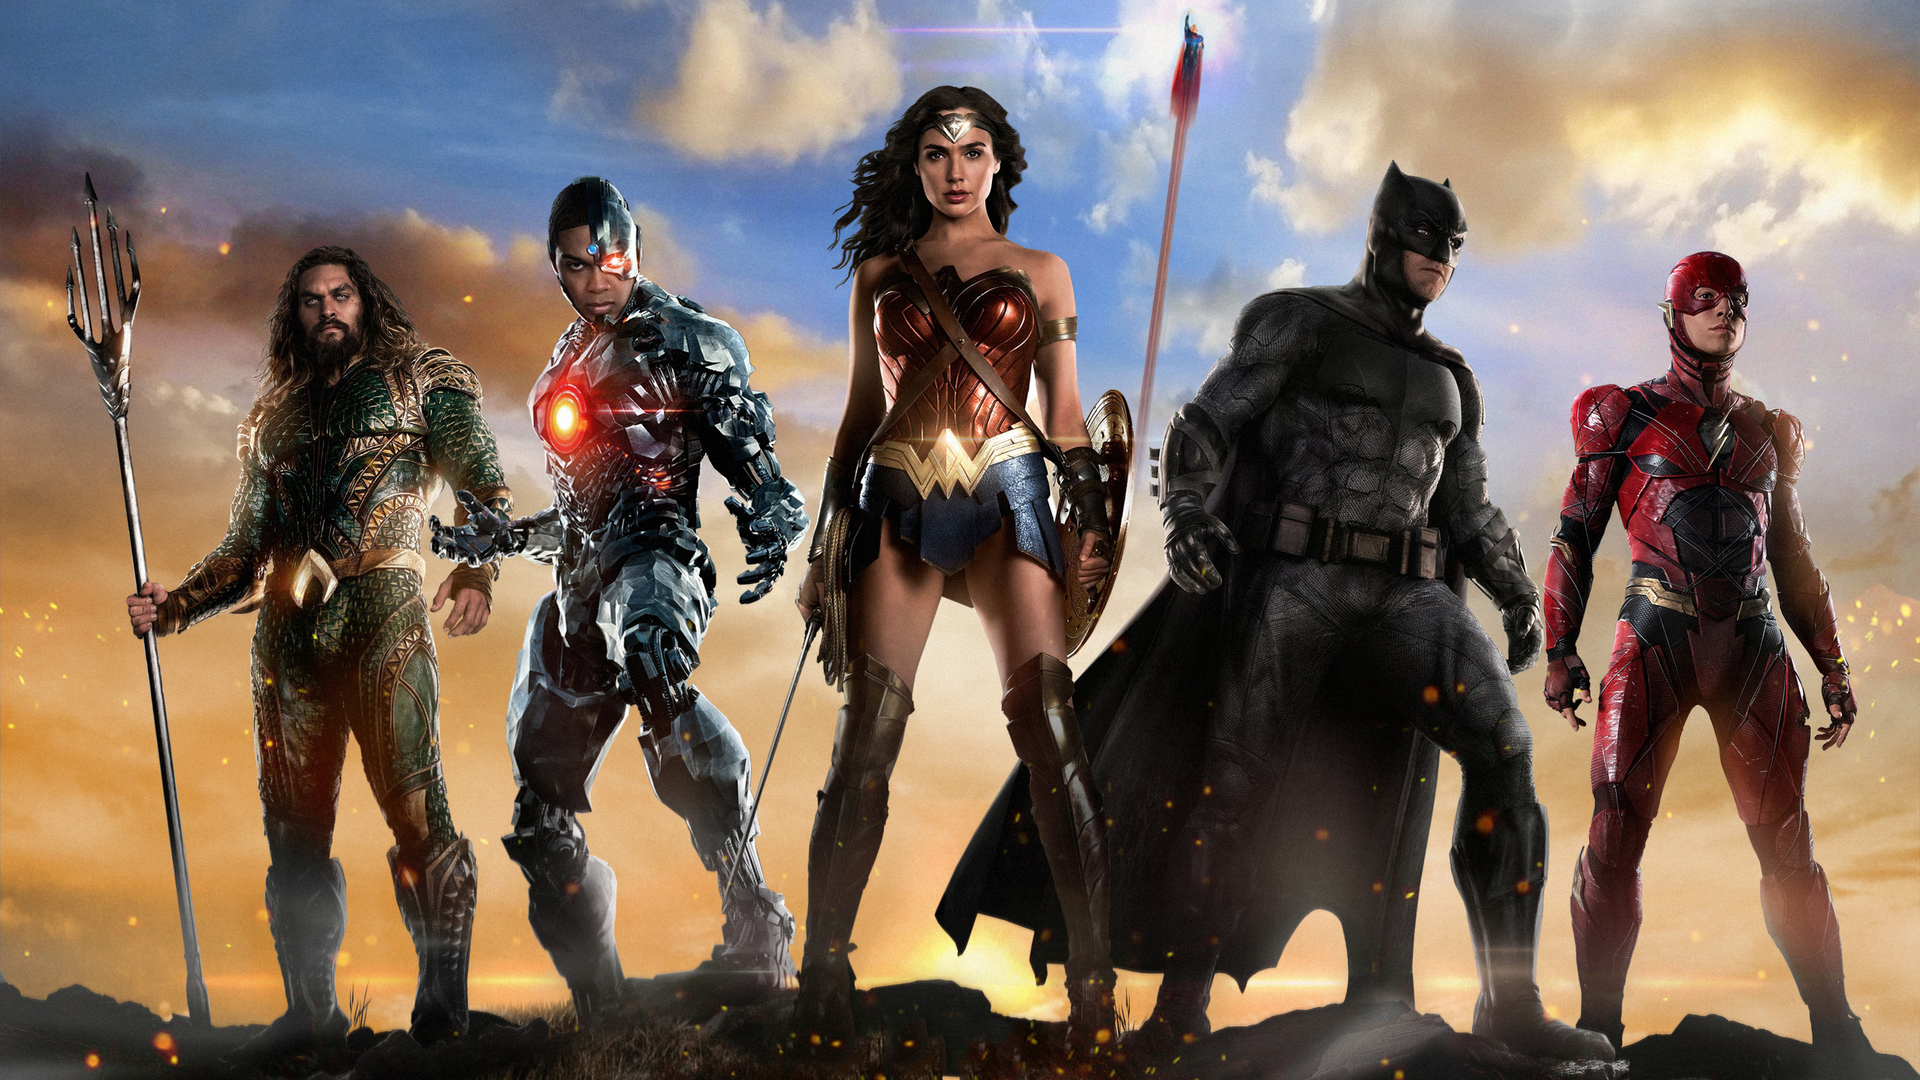 justice-league-movie-new-poster-dh.jpg